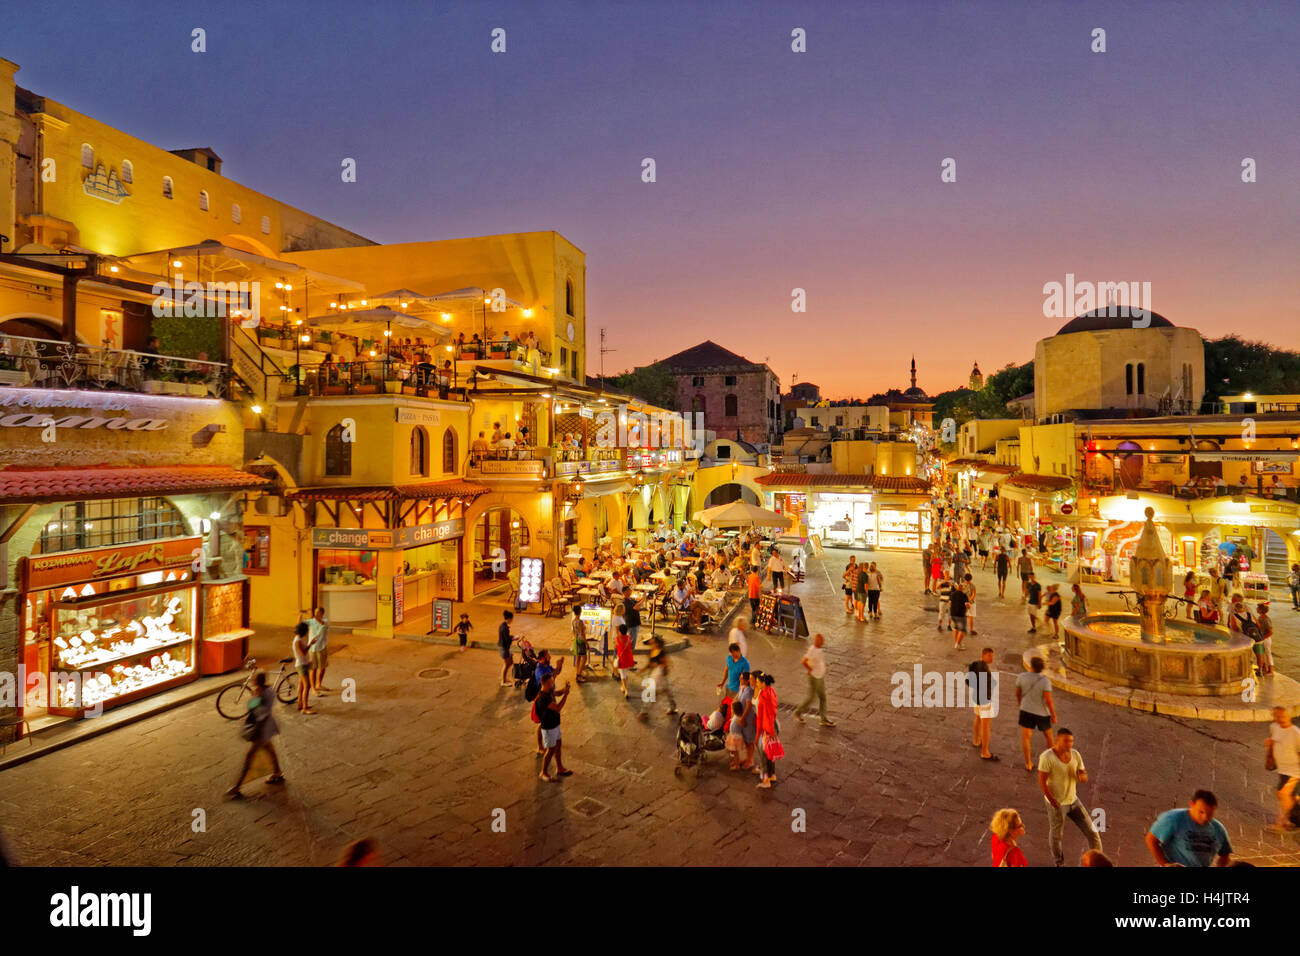 Twilight at Hippocrates (Ipokratous) Square, at Rhodes Old Town, Island of Rhodes, Dodecanese Islands, Greece. - Stock Image